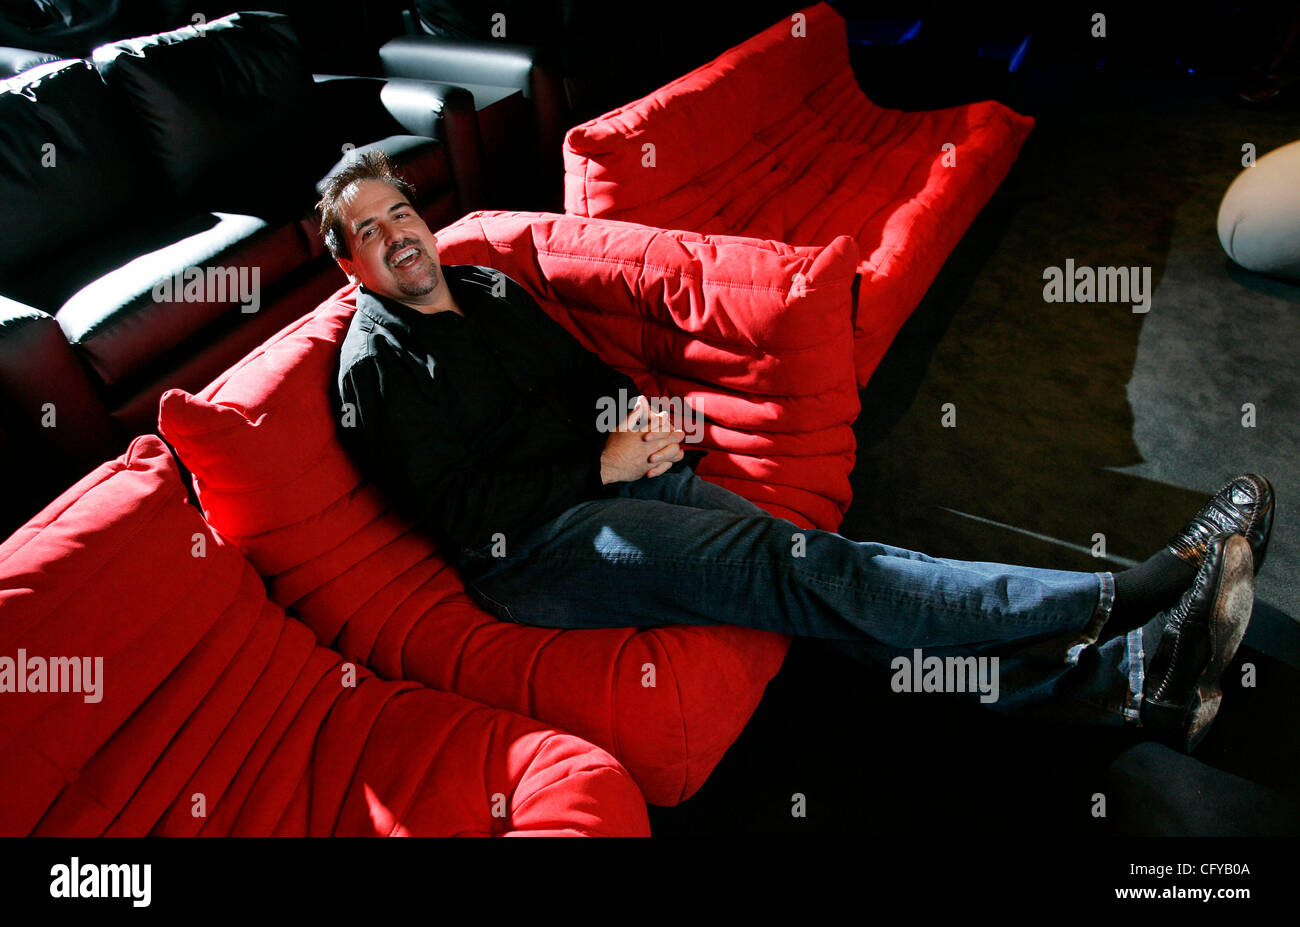 Wondrous Bean Bag Chairs Stock Photos Bean Bag Chairs Stock Images Forskolin Free Trial Chair Design Images Forskolin Free Trialorg